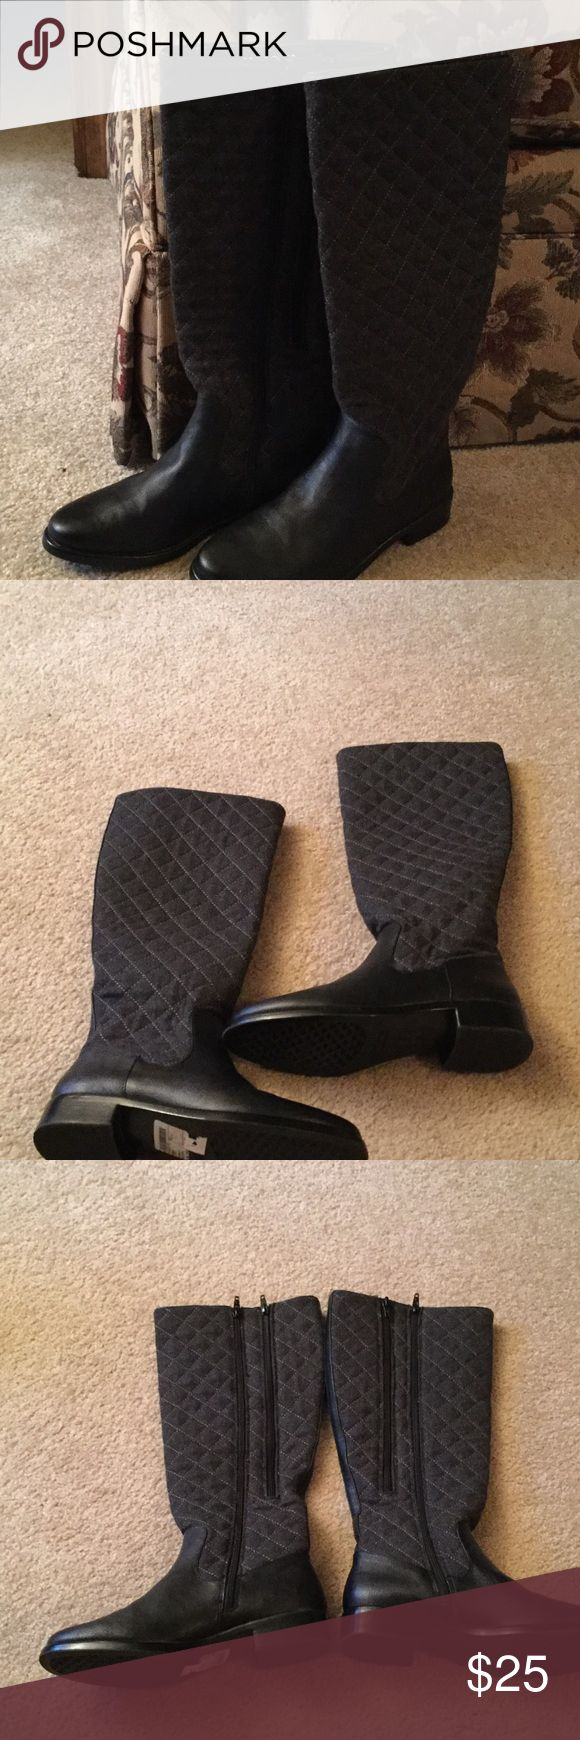 Aerosoles Boots NWT Fabric Upper, balance man made.  Quilted top.  2 zippers up the inside of boots.  One is for wide calf.  1 inch heels.  NWT. Black bottom with a grayish black top. AEROSOLES Shoes Winter & Rain Boots